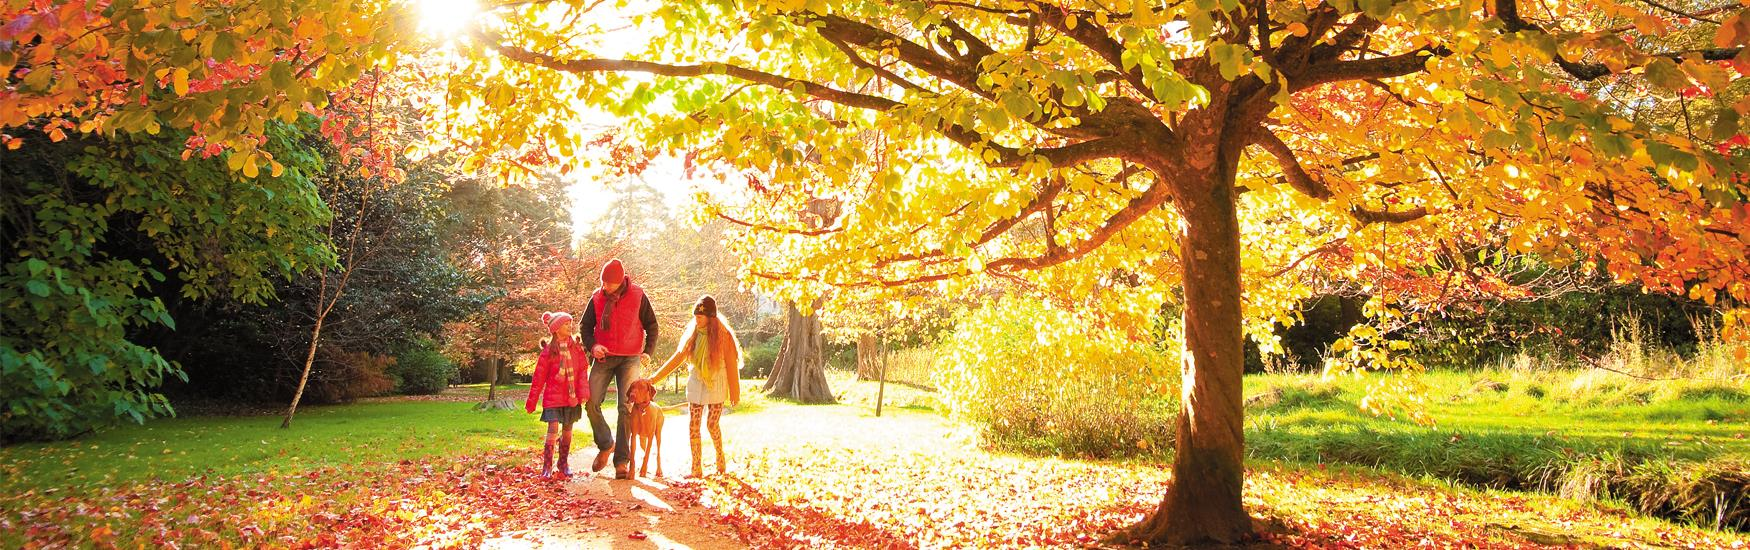 Explore our beautiful Parks and Gardens